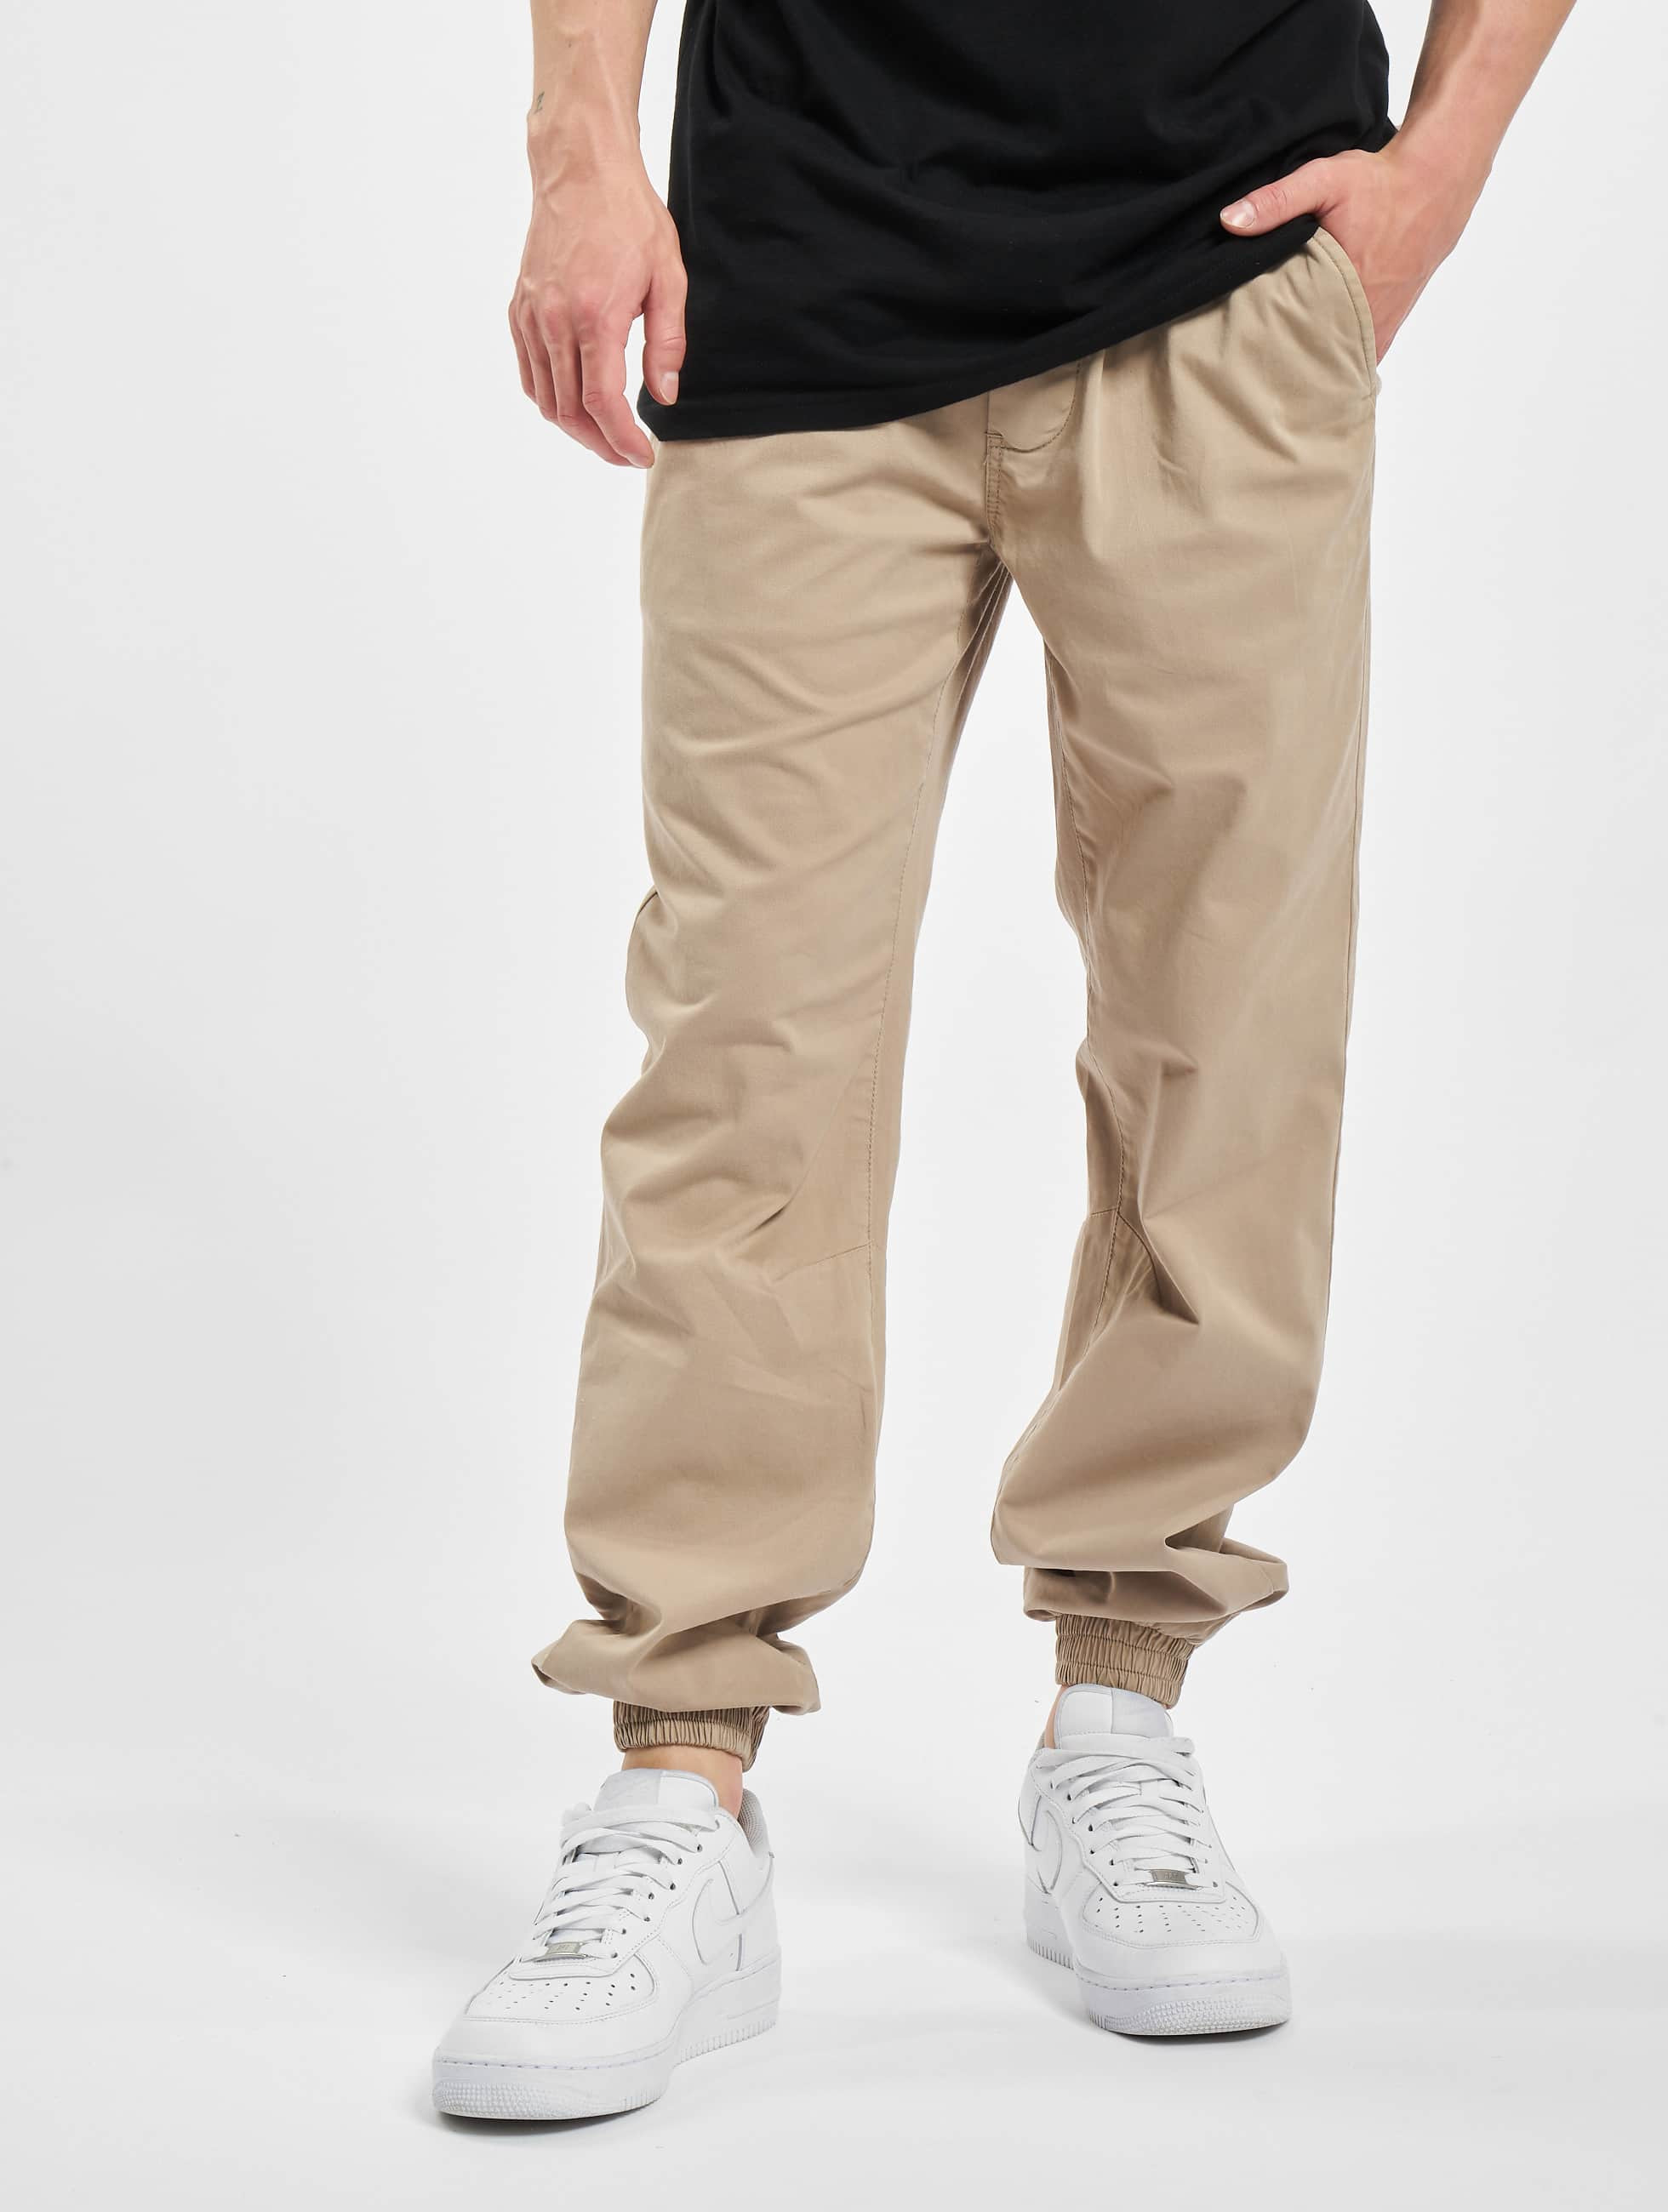 Urban Classics joggingbroek Stretch Twill beige